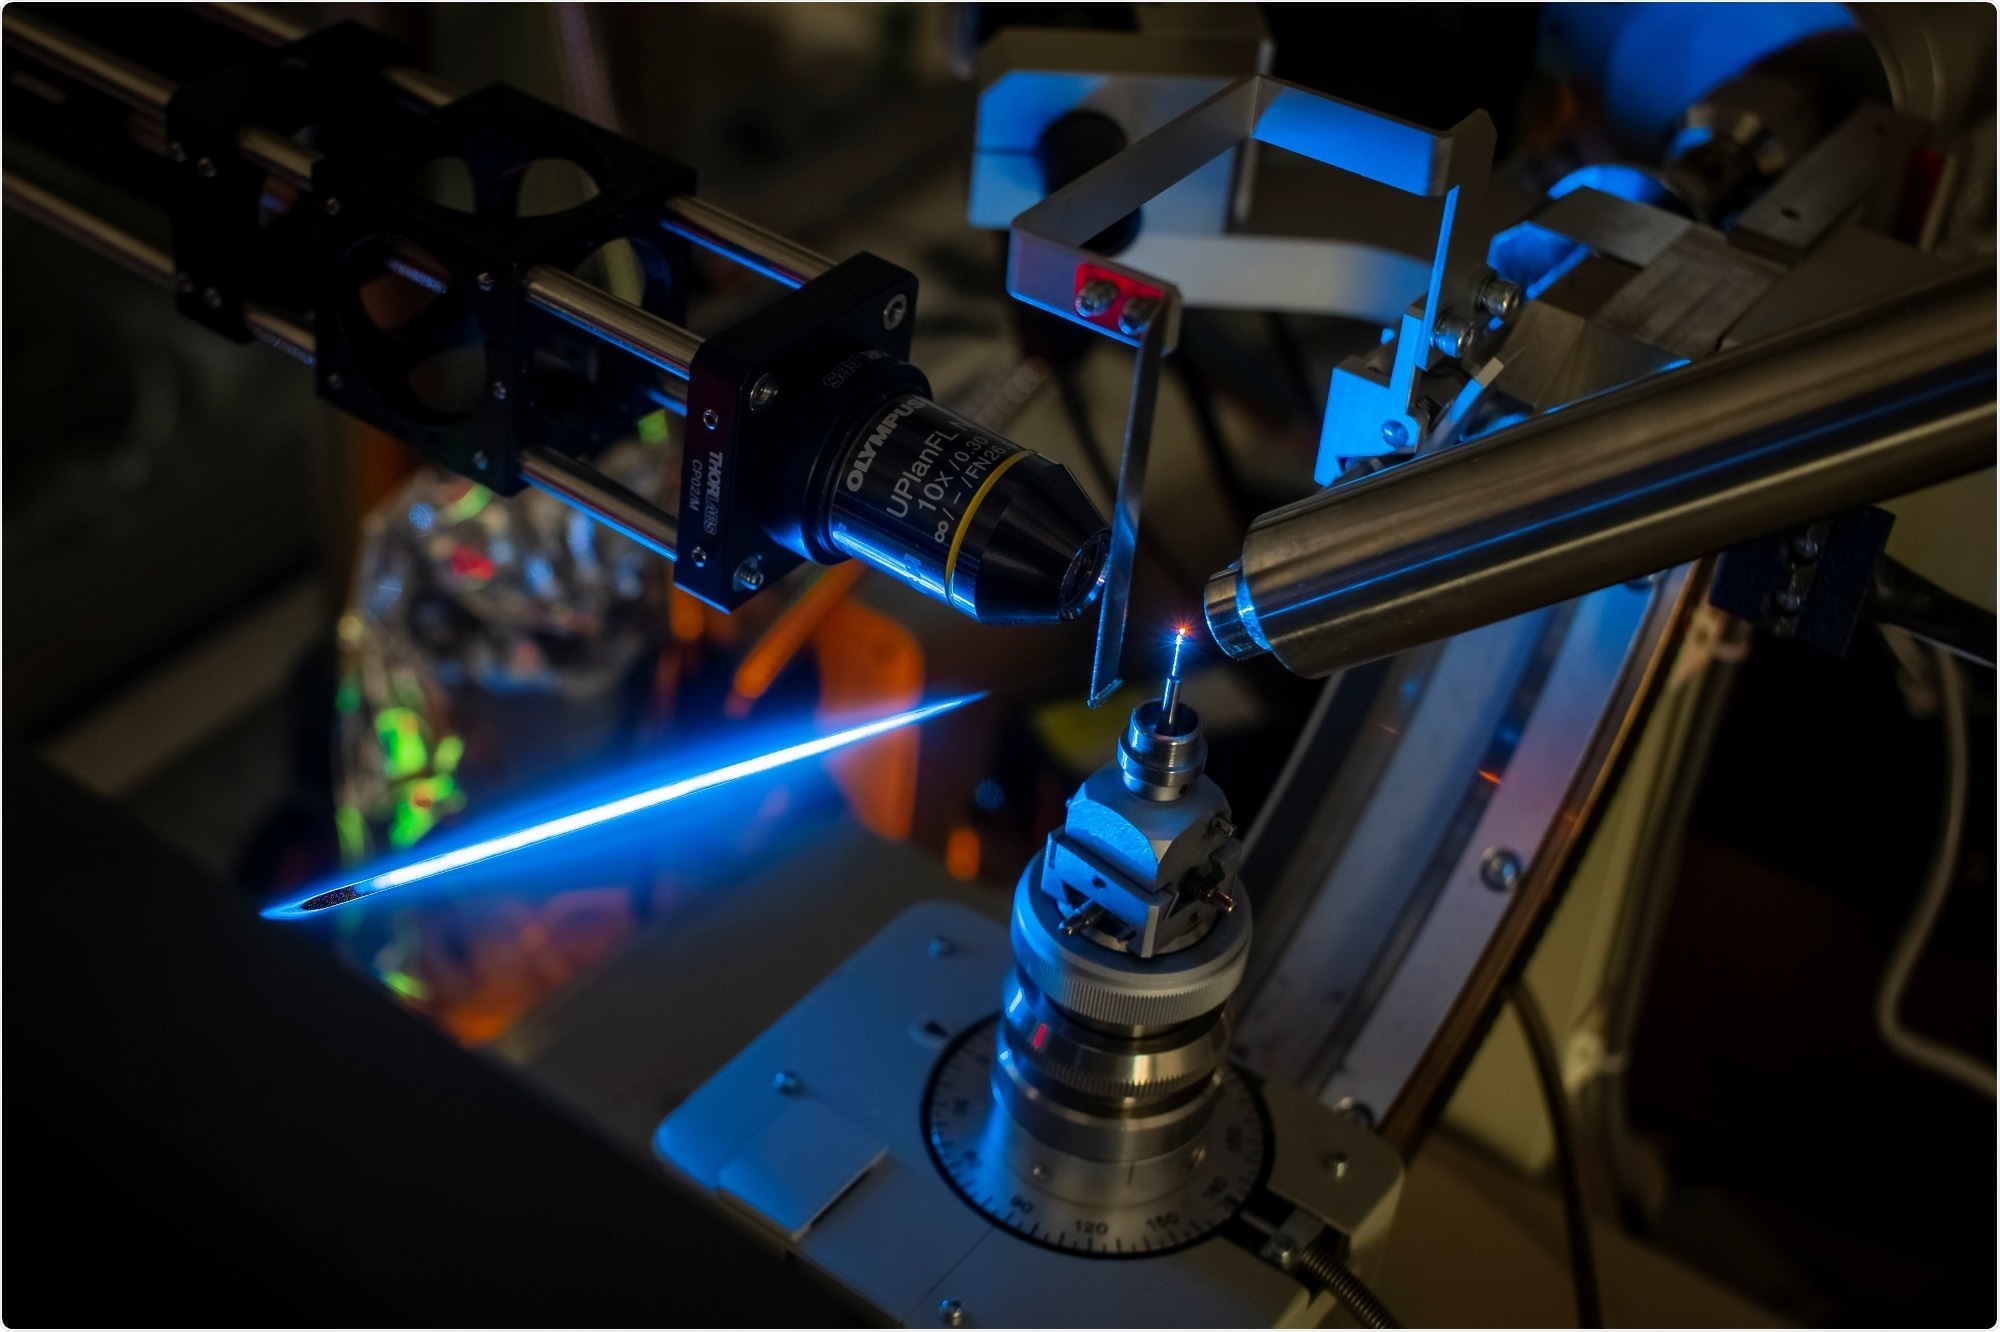 Study shows fluorescent protein molecules act as tiny antennas with optical properties